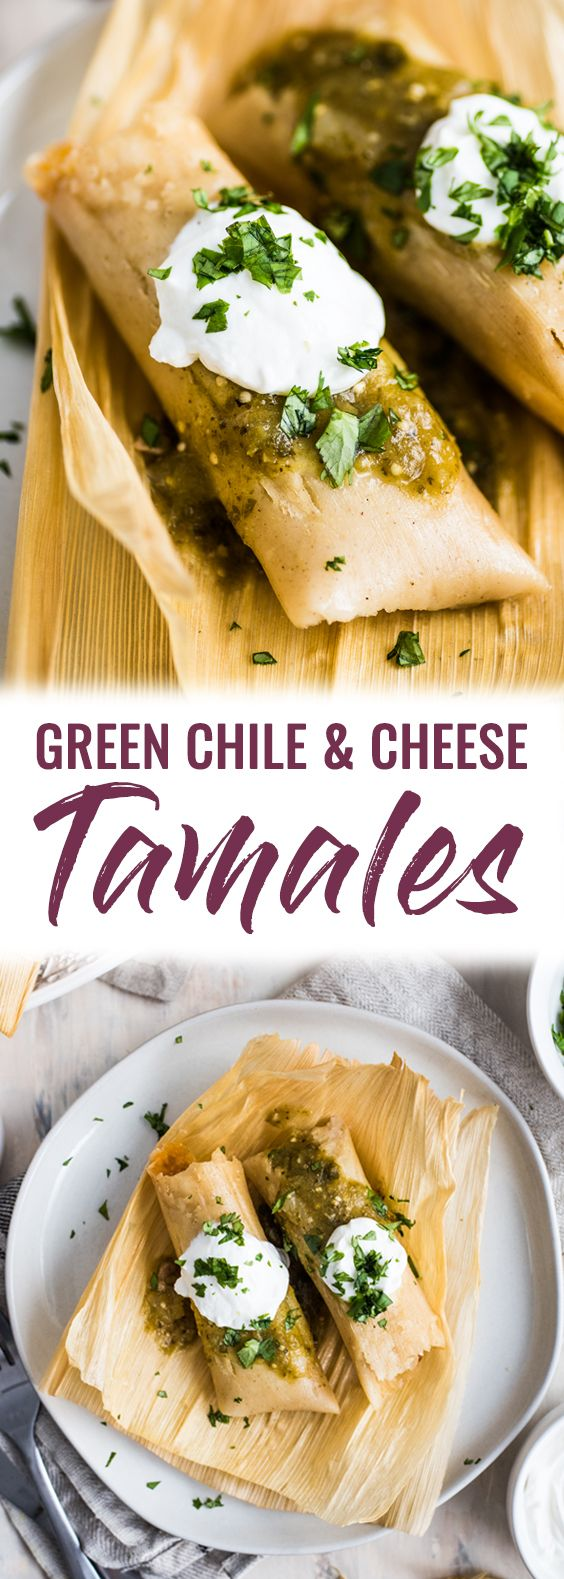 A Mexican classic, these Green Chile and Cheese Vegetarian Tamales are filled with roasted poblano peppers and spicy pepper jack cheese. Also gluten free! #tamales